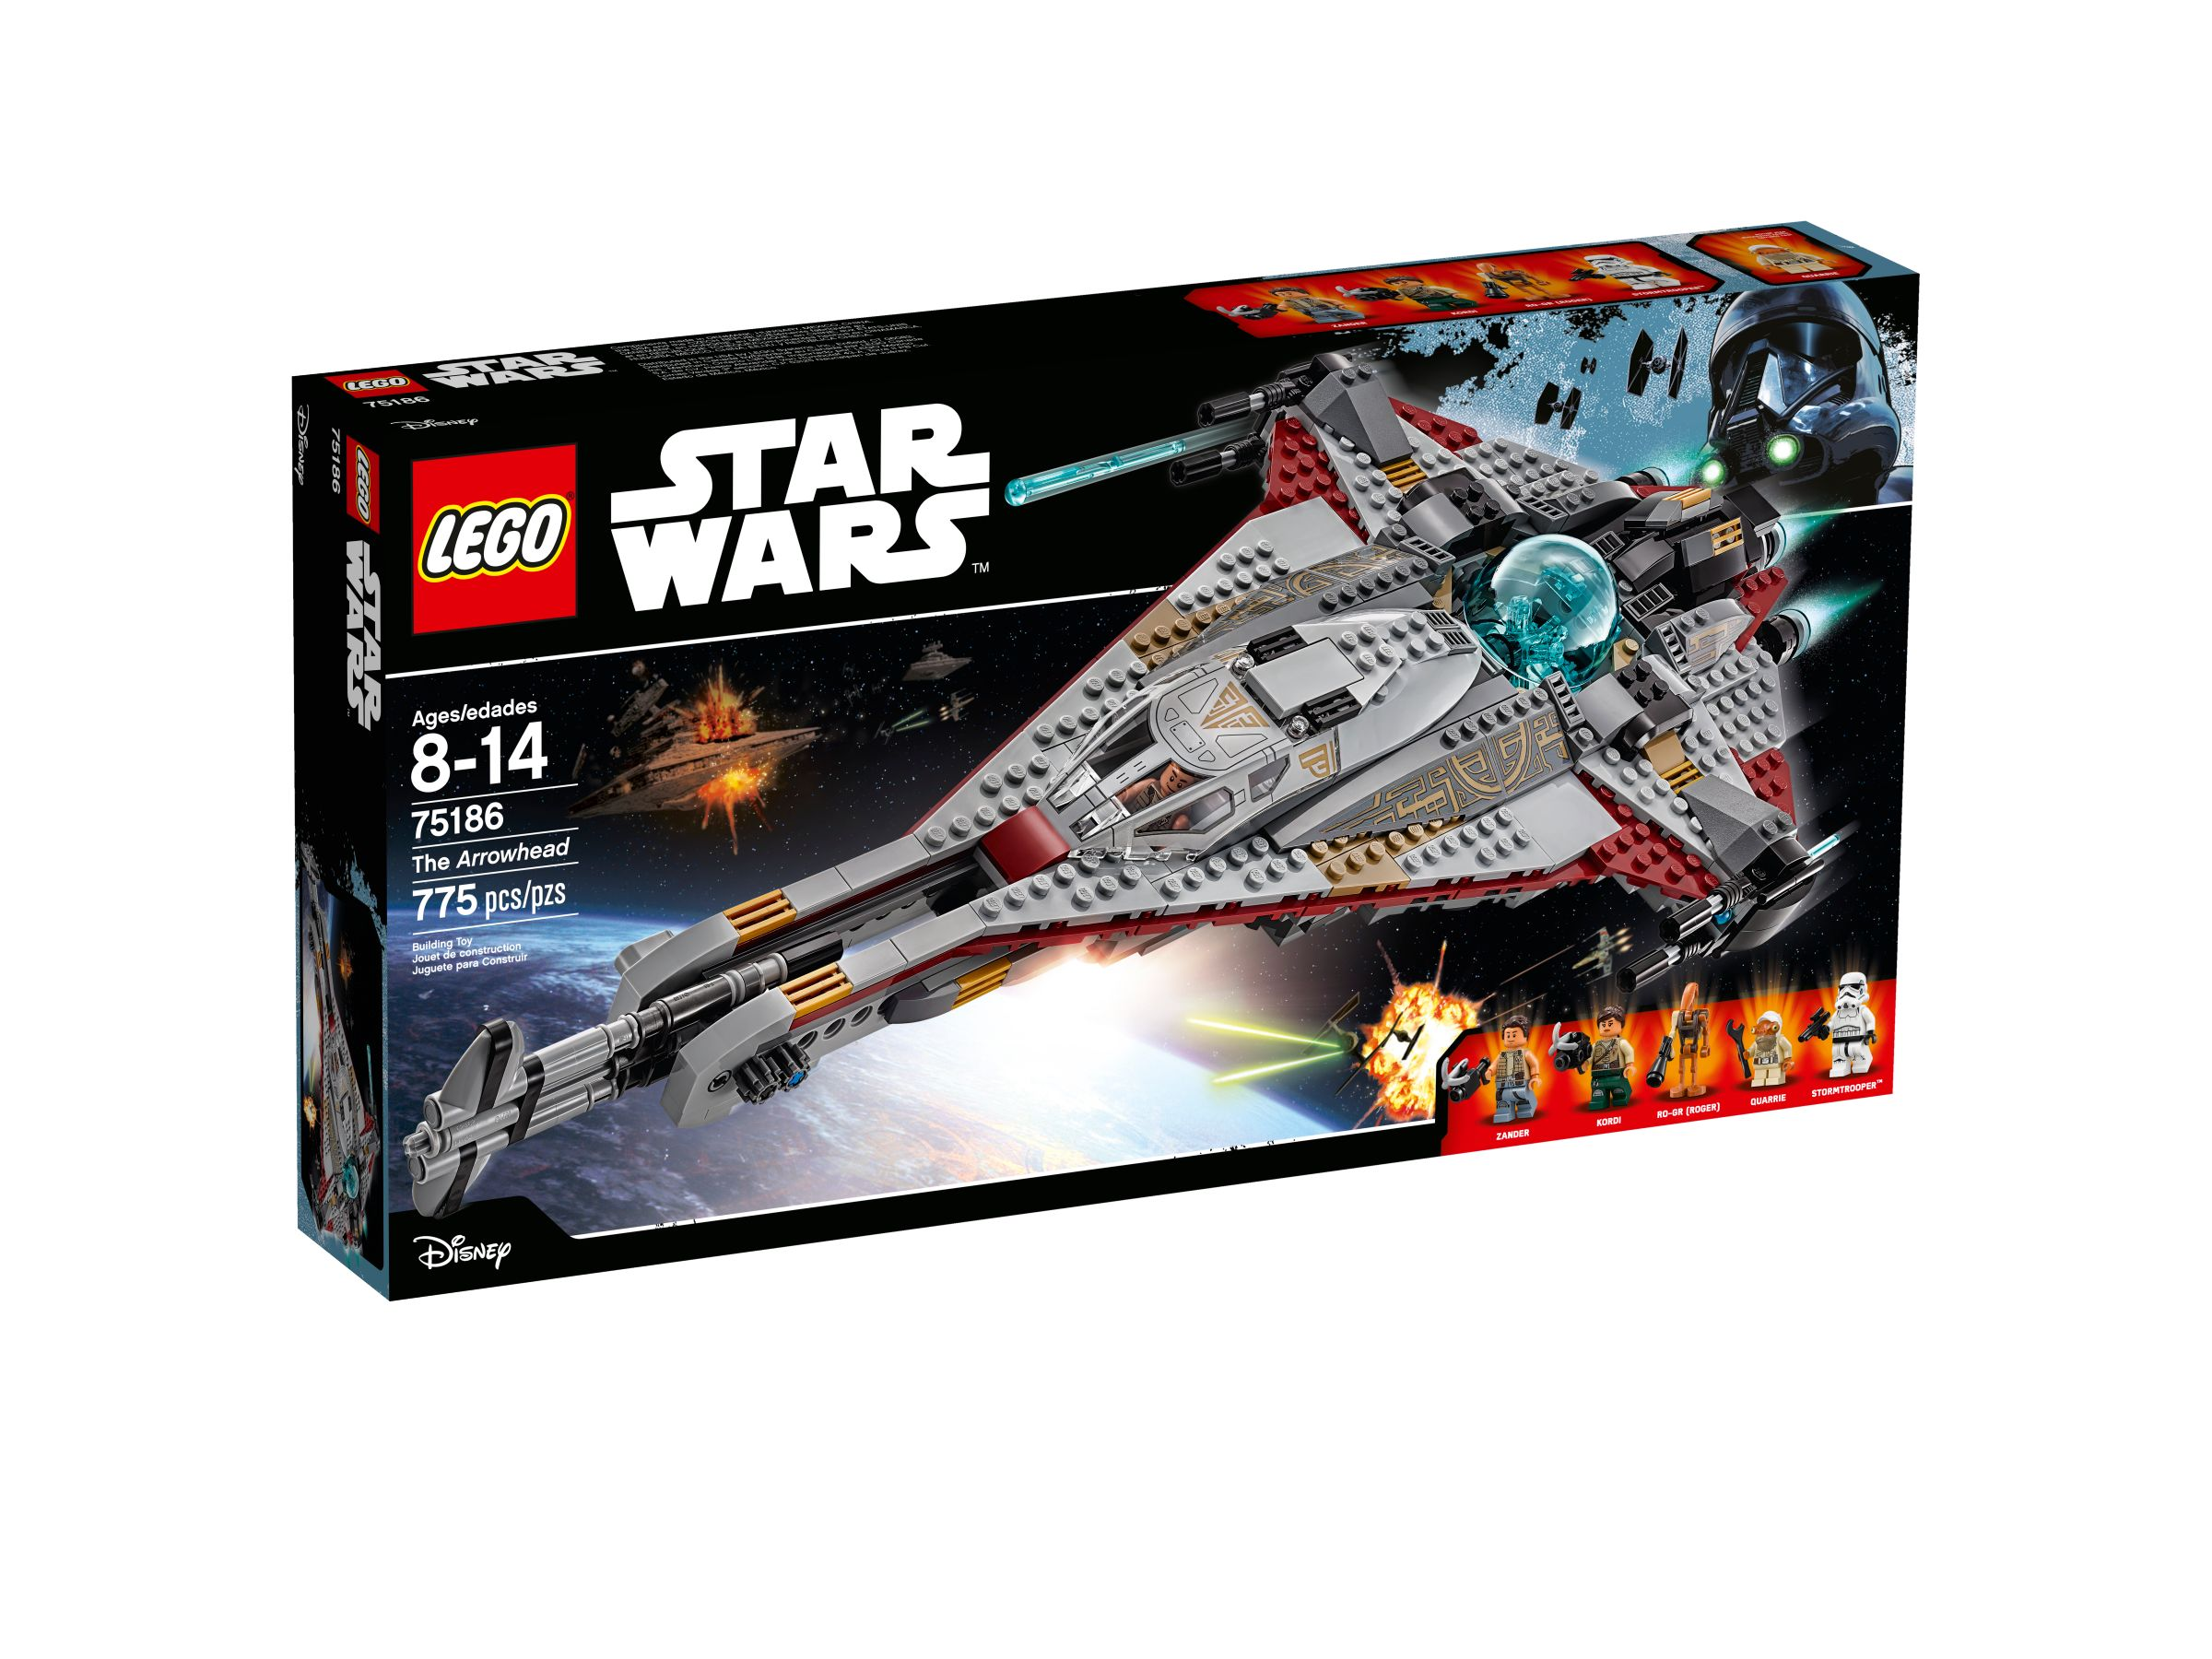 LEGO Star Wars 75186 The Arrowhead LEGO_75186_alt1.jpg